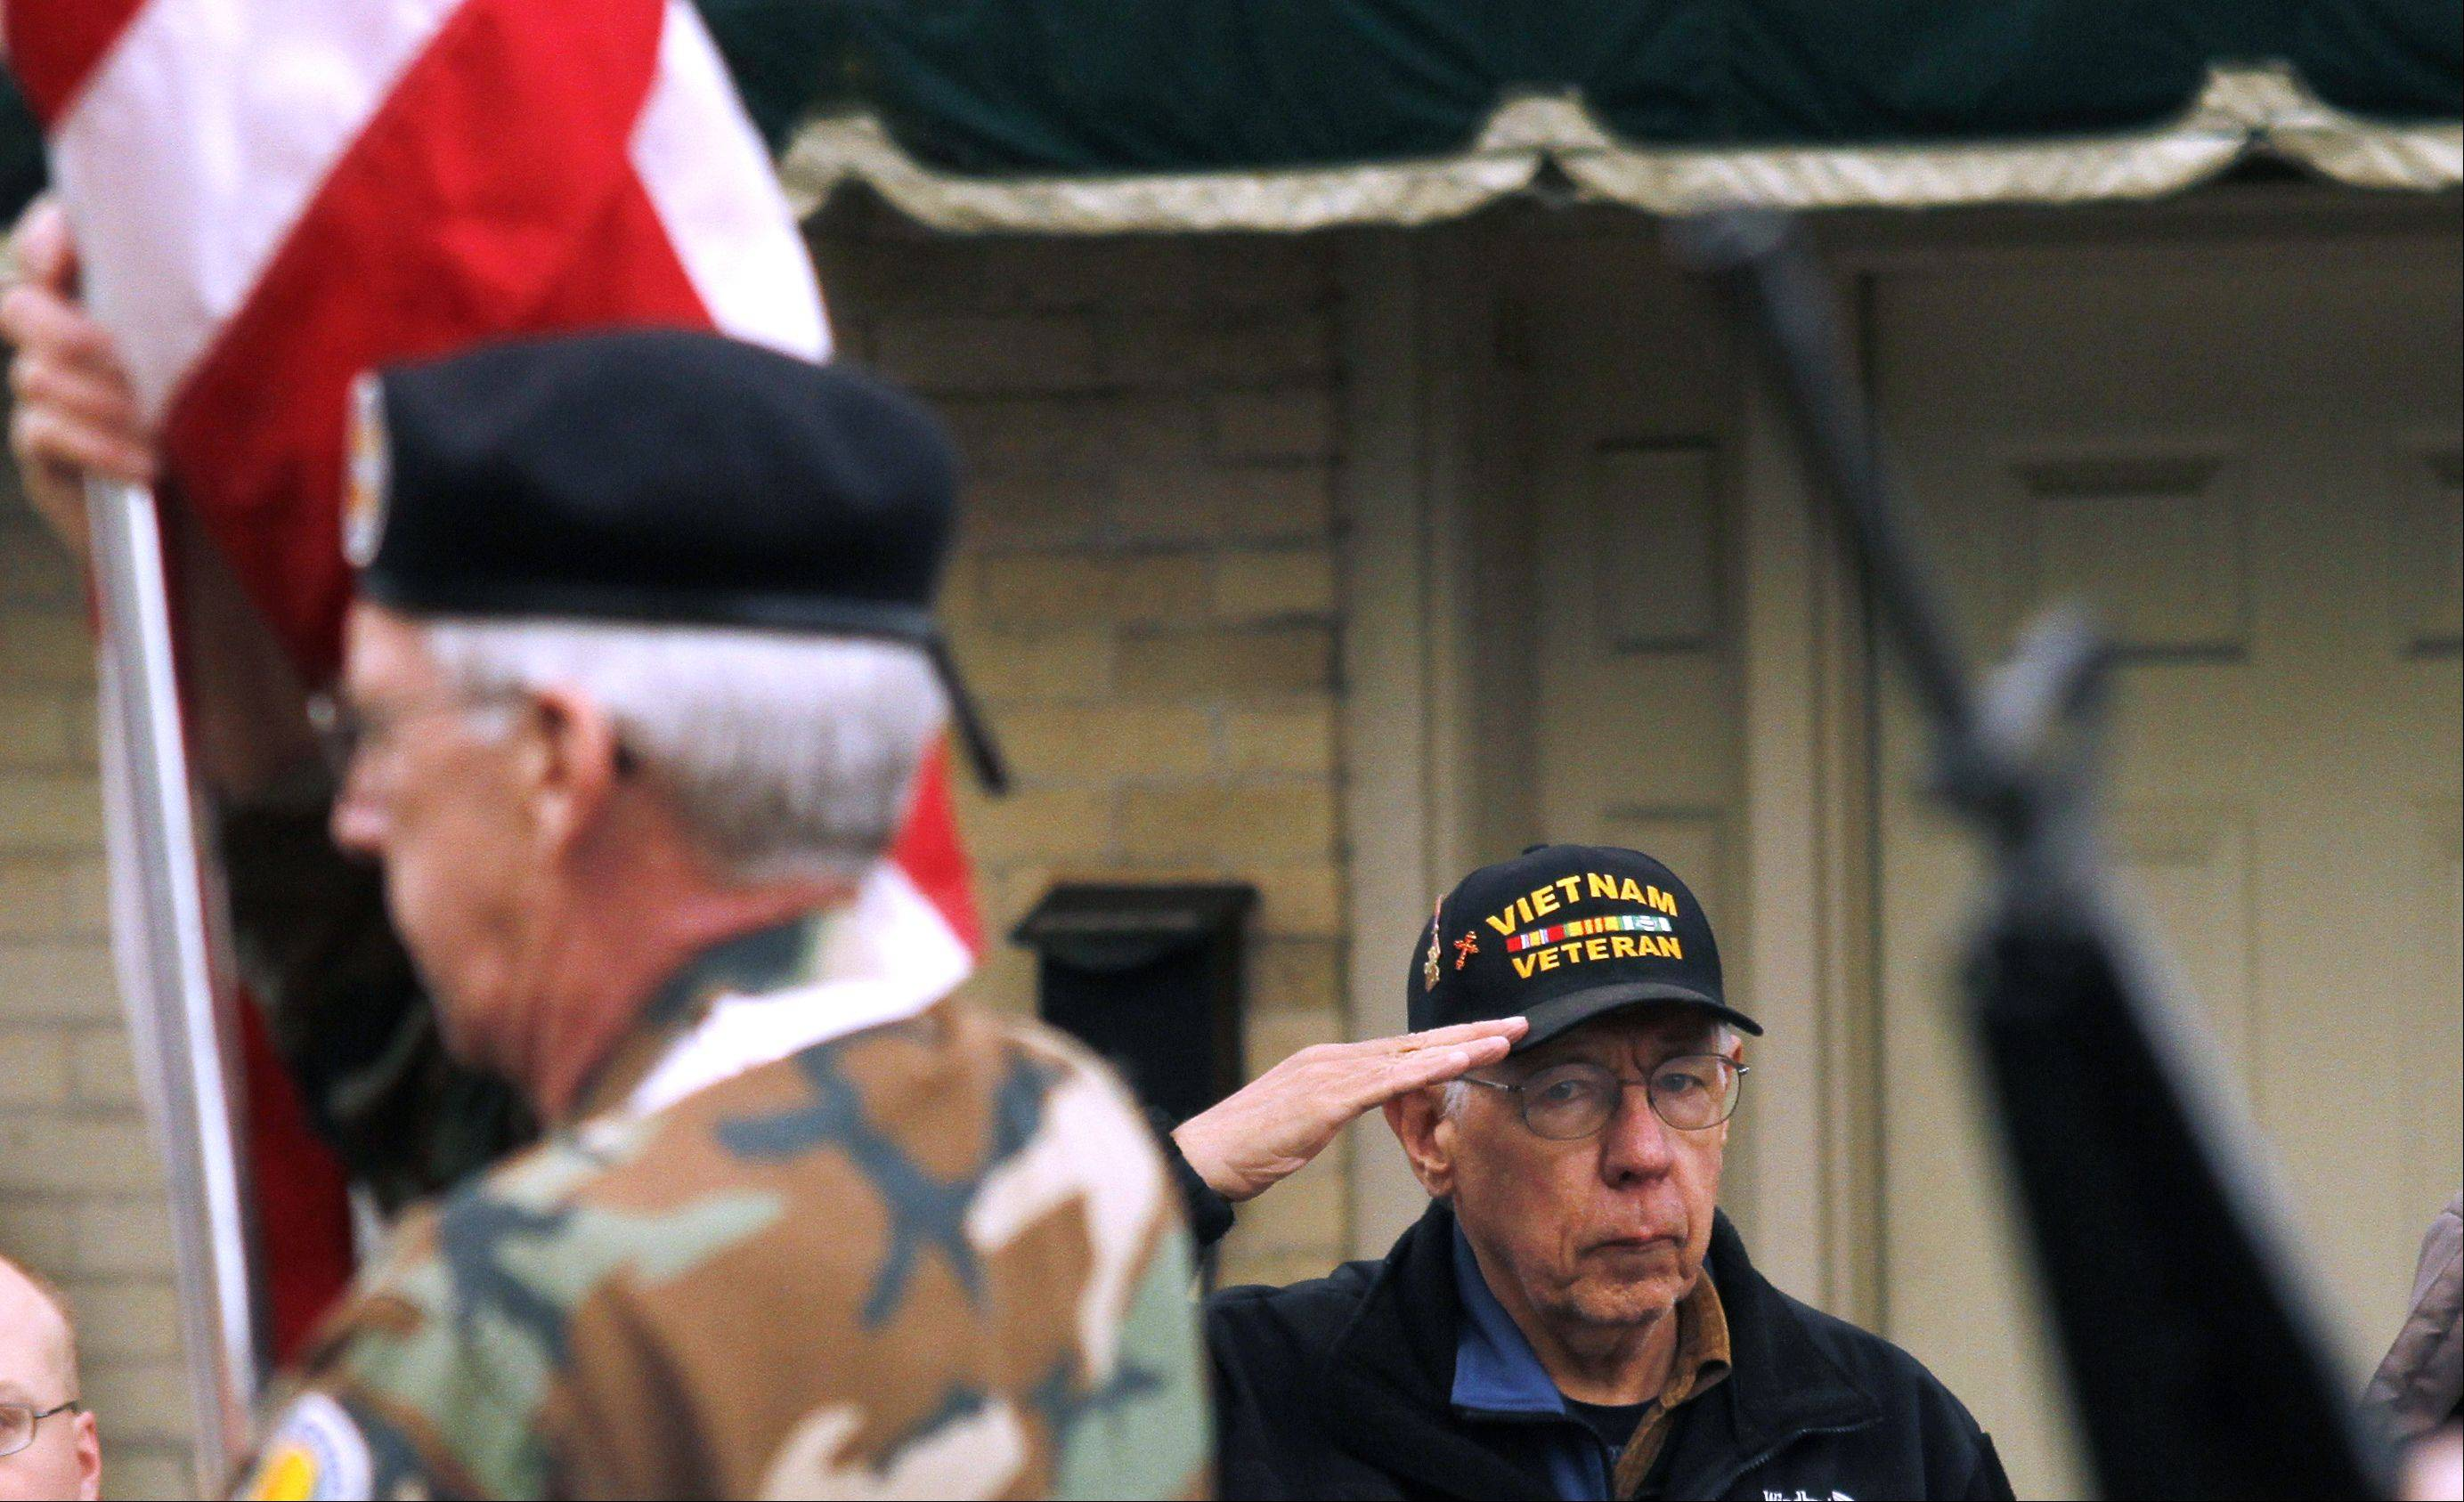 Vietnam War Veteran Irv Schroeder of West Bend salutes the American flag during the Memorial Day parade in West Bend on Monday, May 27, 2013.